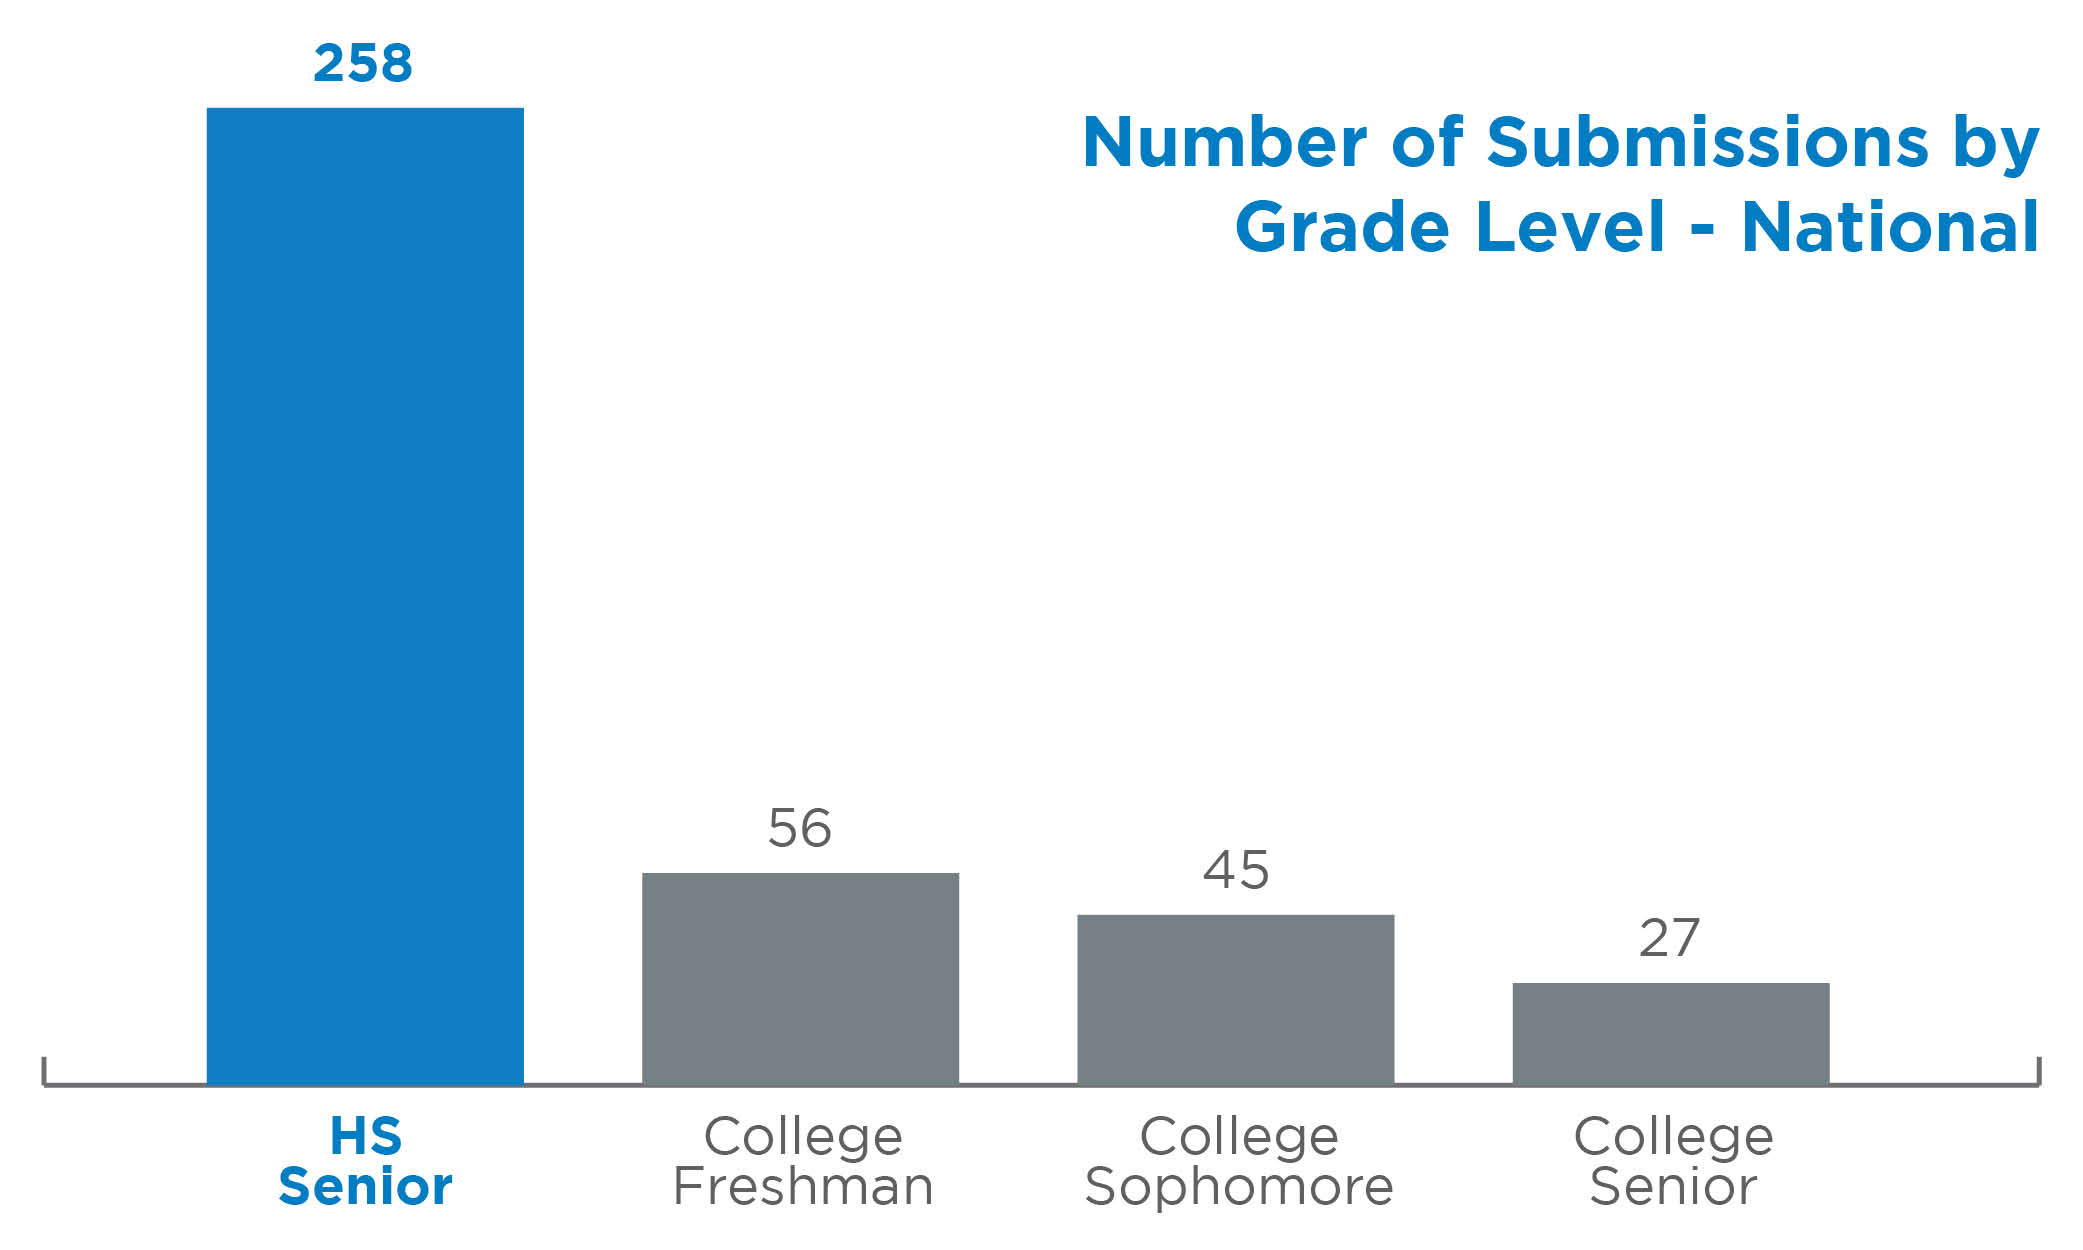 Number of Submissions by Grade Level - National